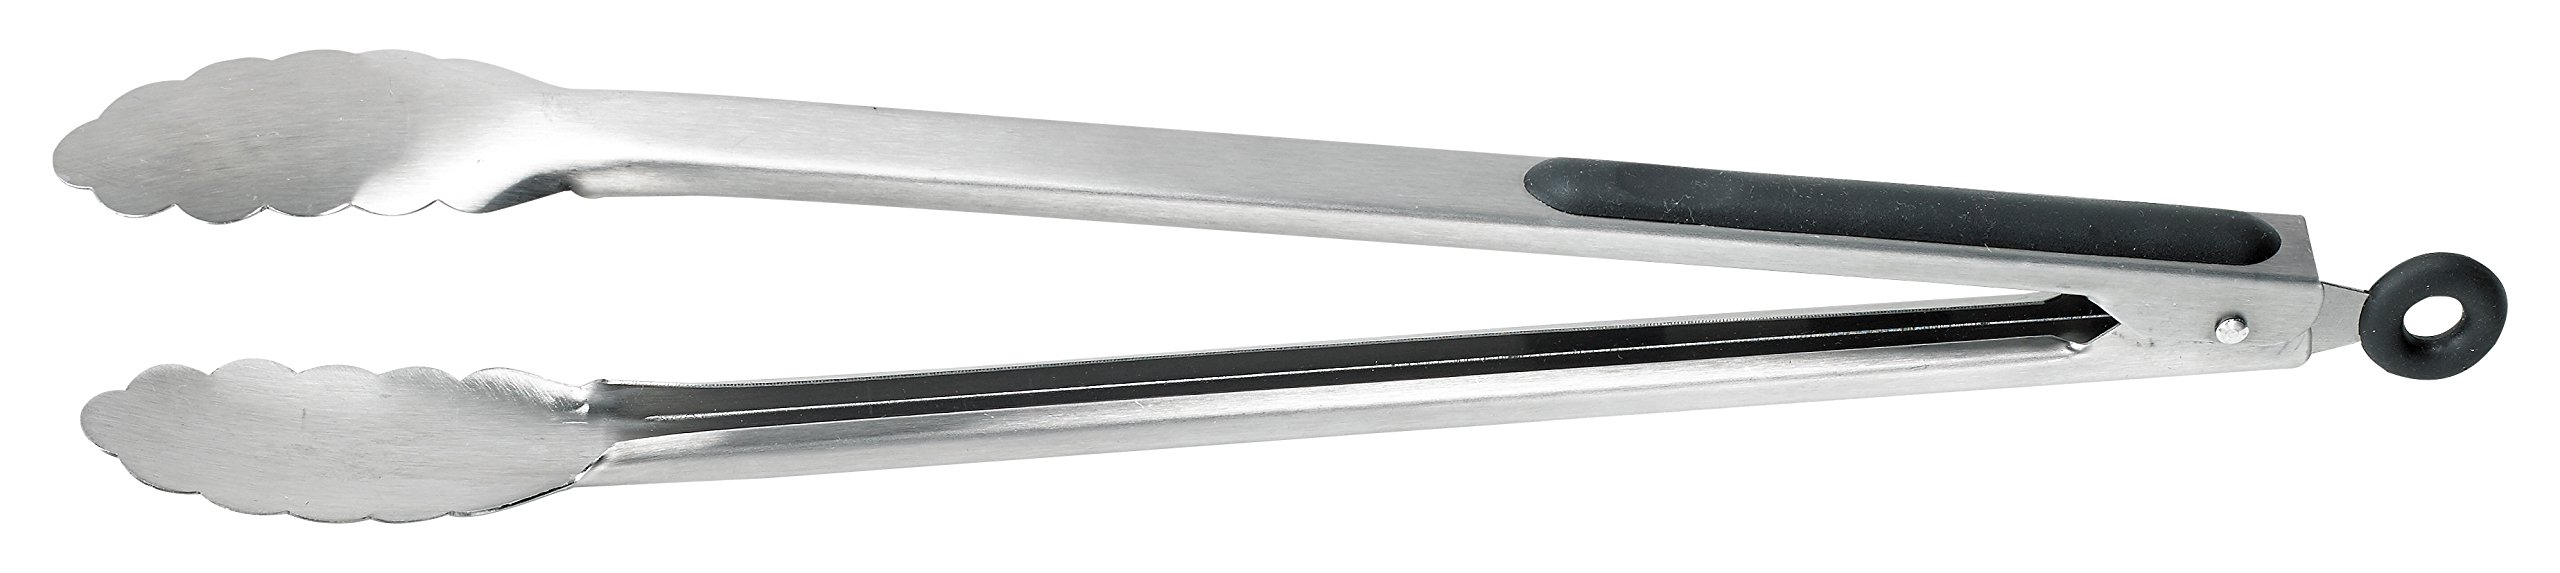 Cutlery-Pro Chef Locking Kitchen Tong, Professional Quality, 18/8 Stainless Steel, 12-Inches